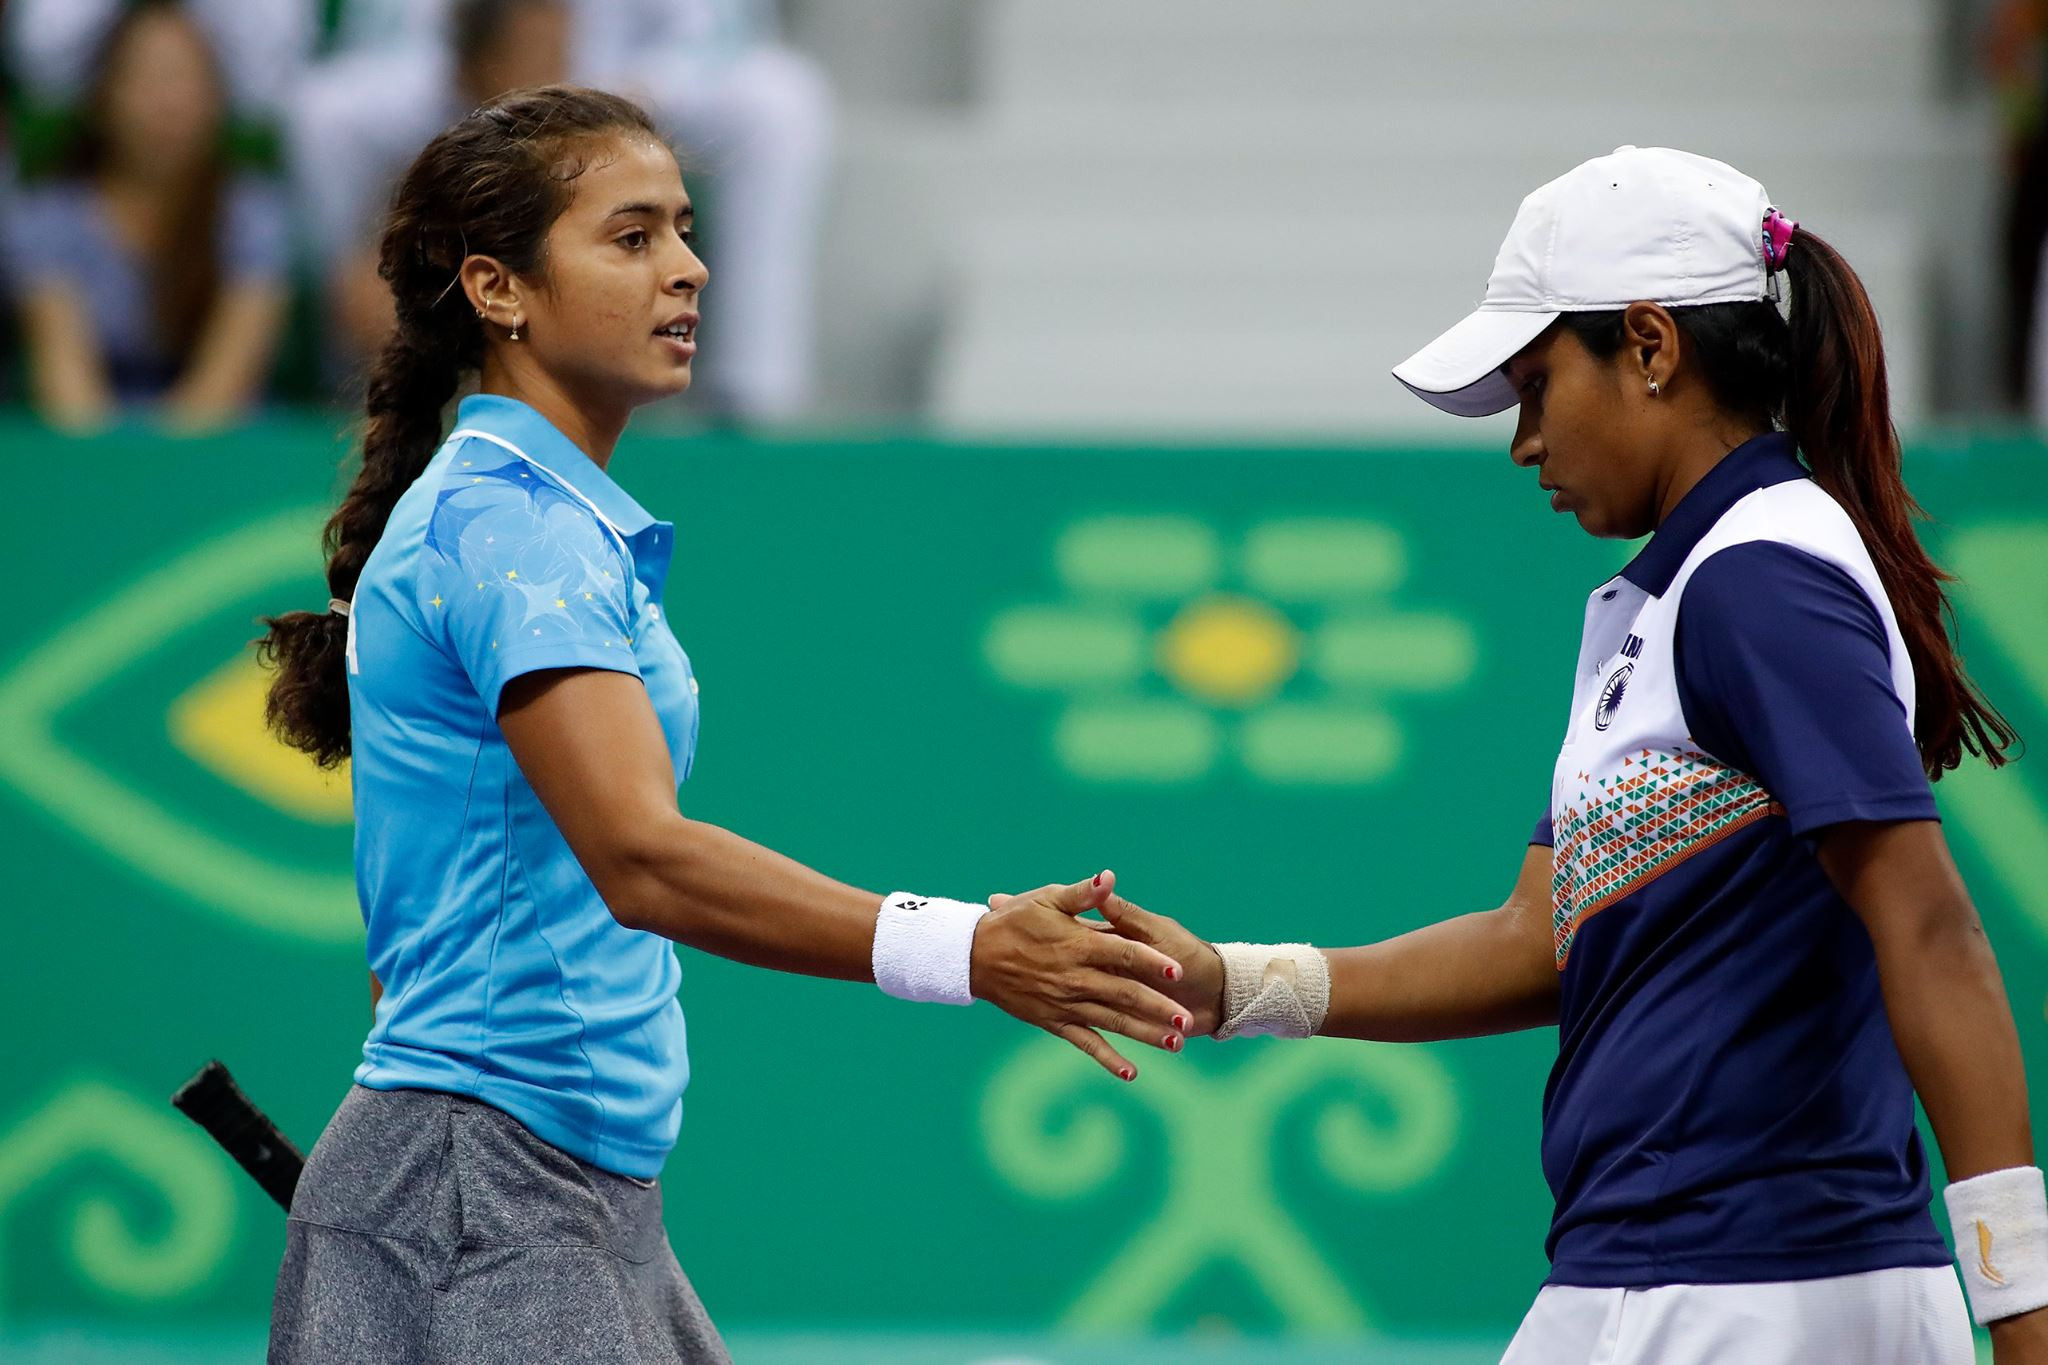 India's Ankita Raina and P. Thombare overcame Indonesia's Jessy Rompies and Lavinia Tananta in the women's doubles indoor tennis semi-finals ©Ashgabat 2017/Facebook